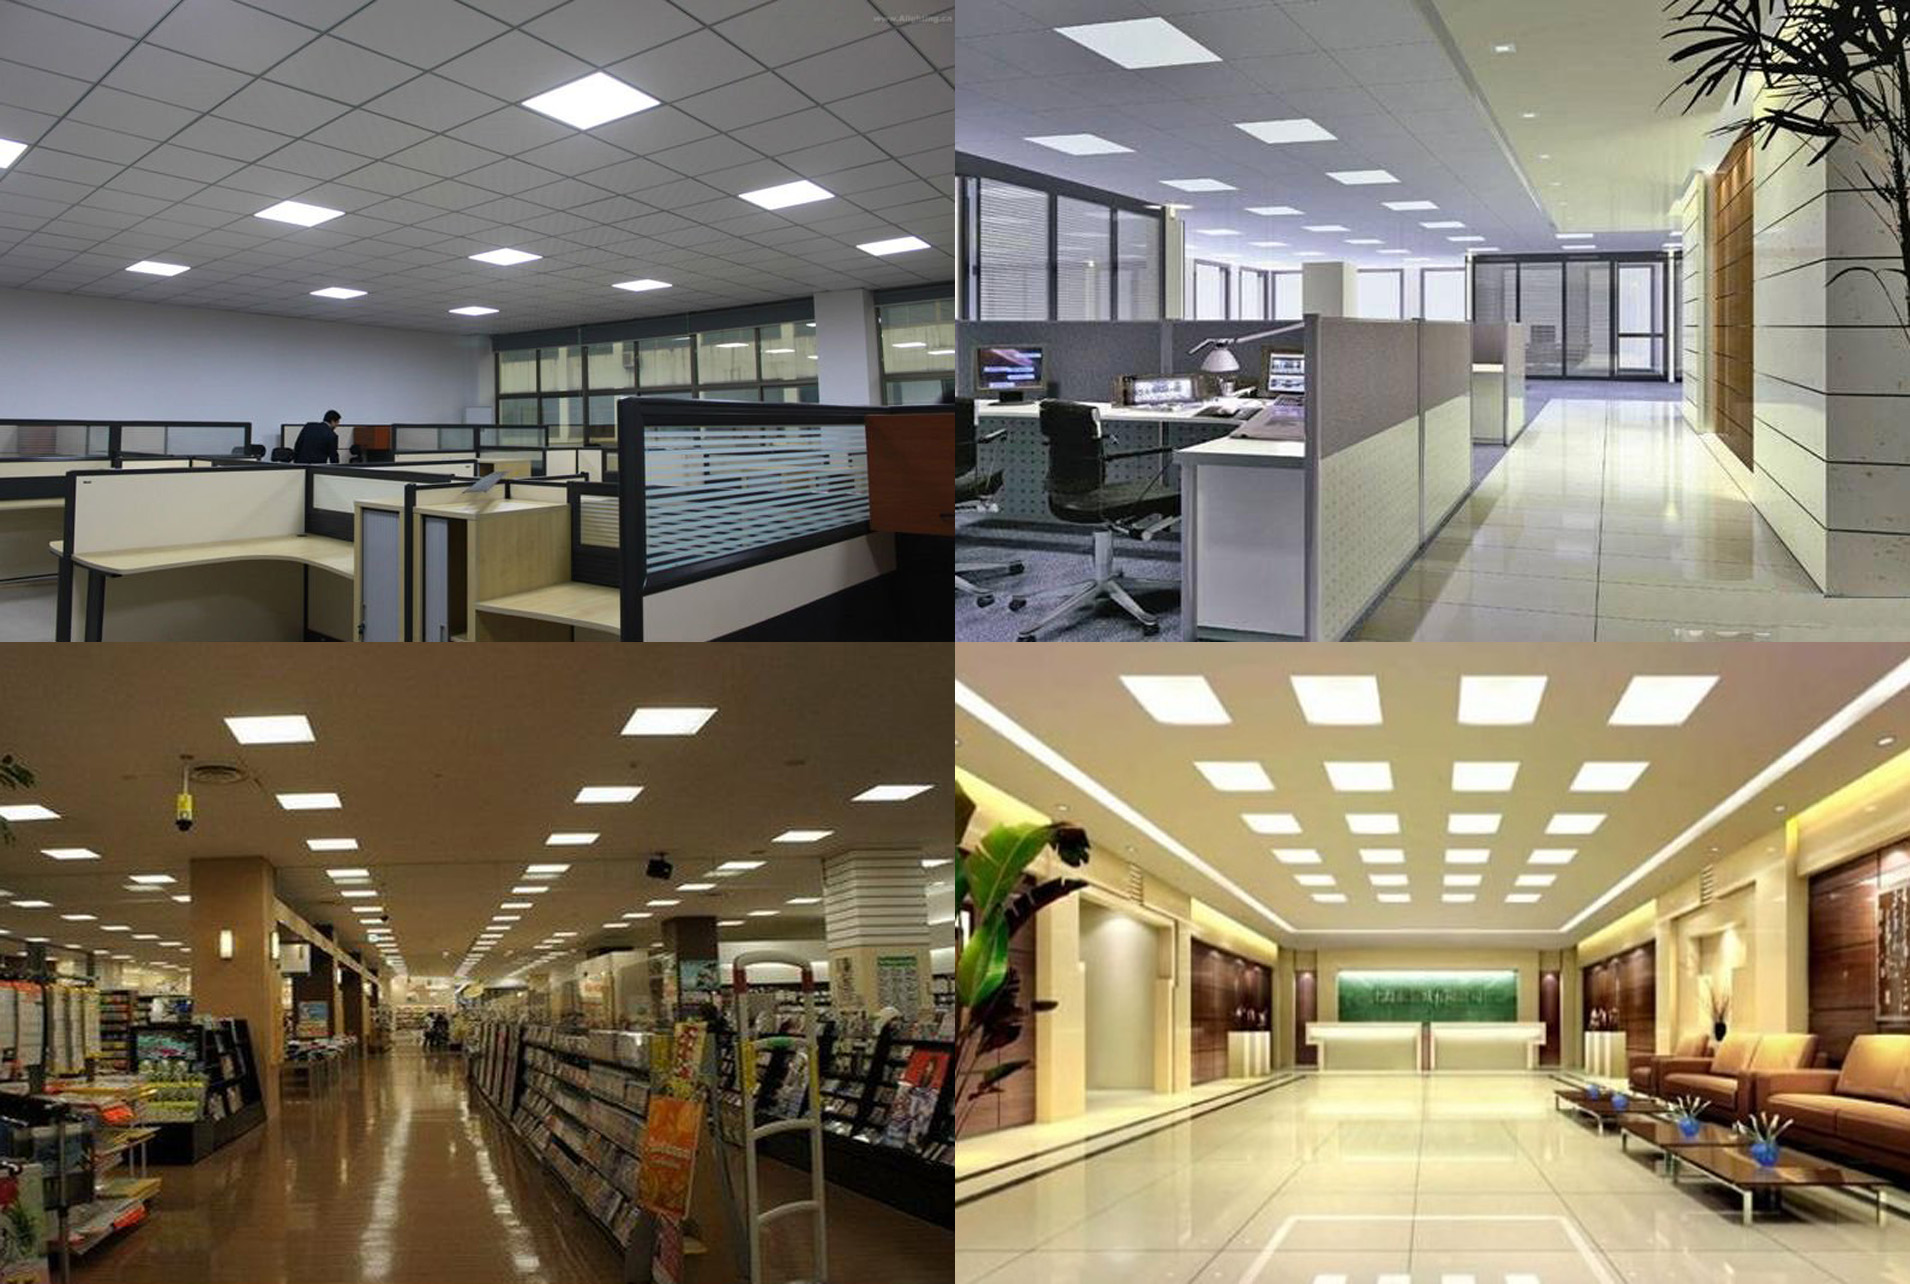 commercial lighting shopping malls supermarkets kitchen display